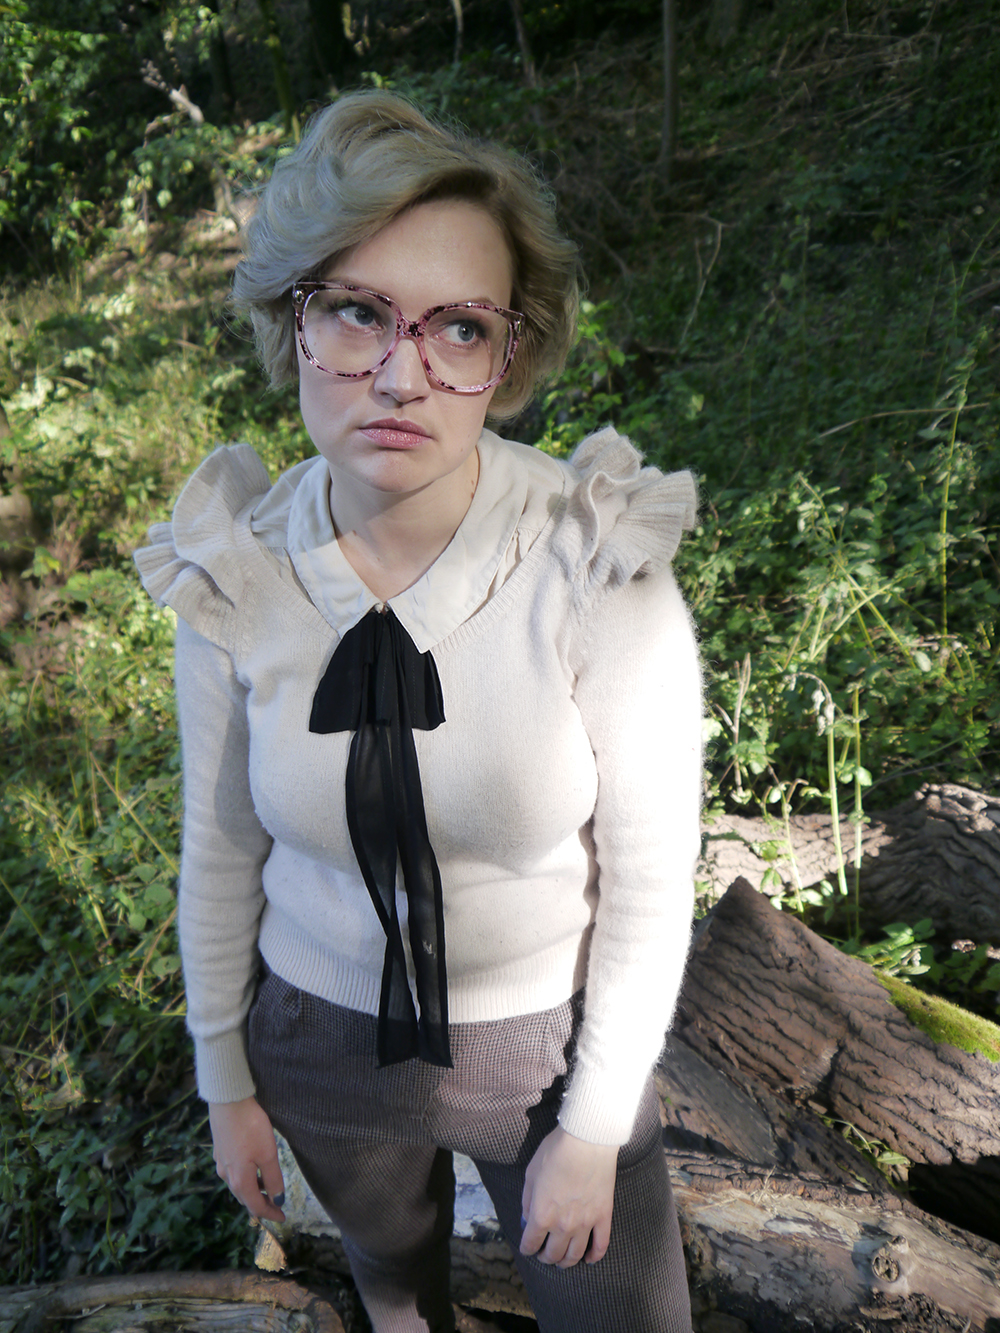 Barb Stranger Things costume, grandma vintage glasses, Barb glasses, Stranger Things fashion style, blogger favourite halloween outfit, easy 80s style, Halloween 2016 costumes, unlikely style icon, barb stranger things style, Stranger Things Barb hairstyle